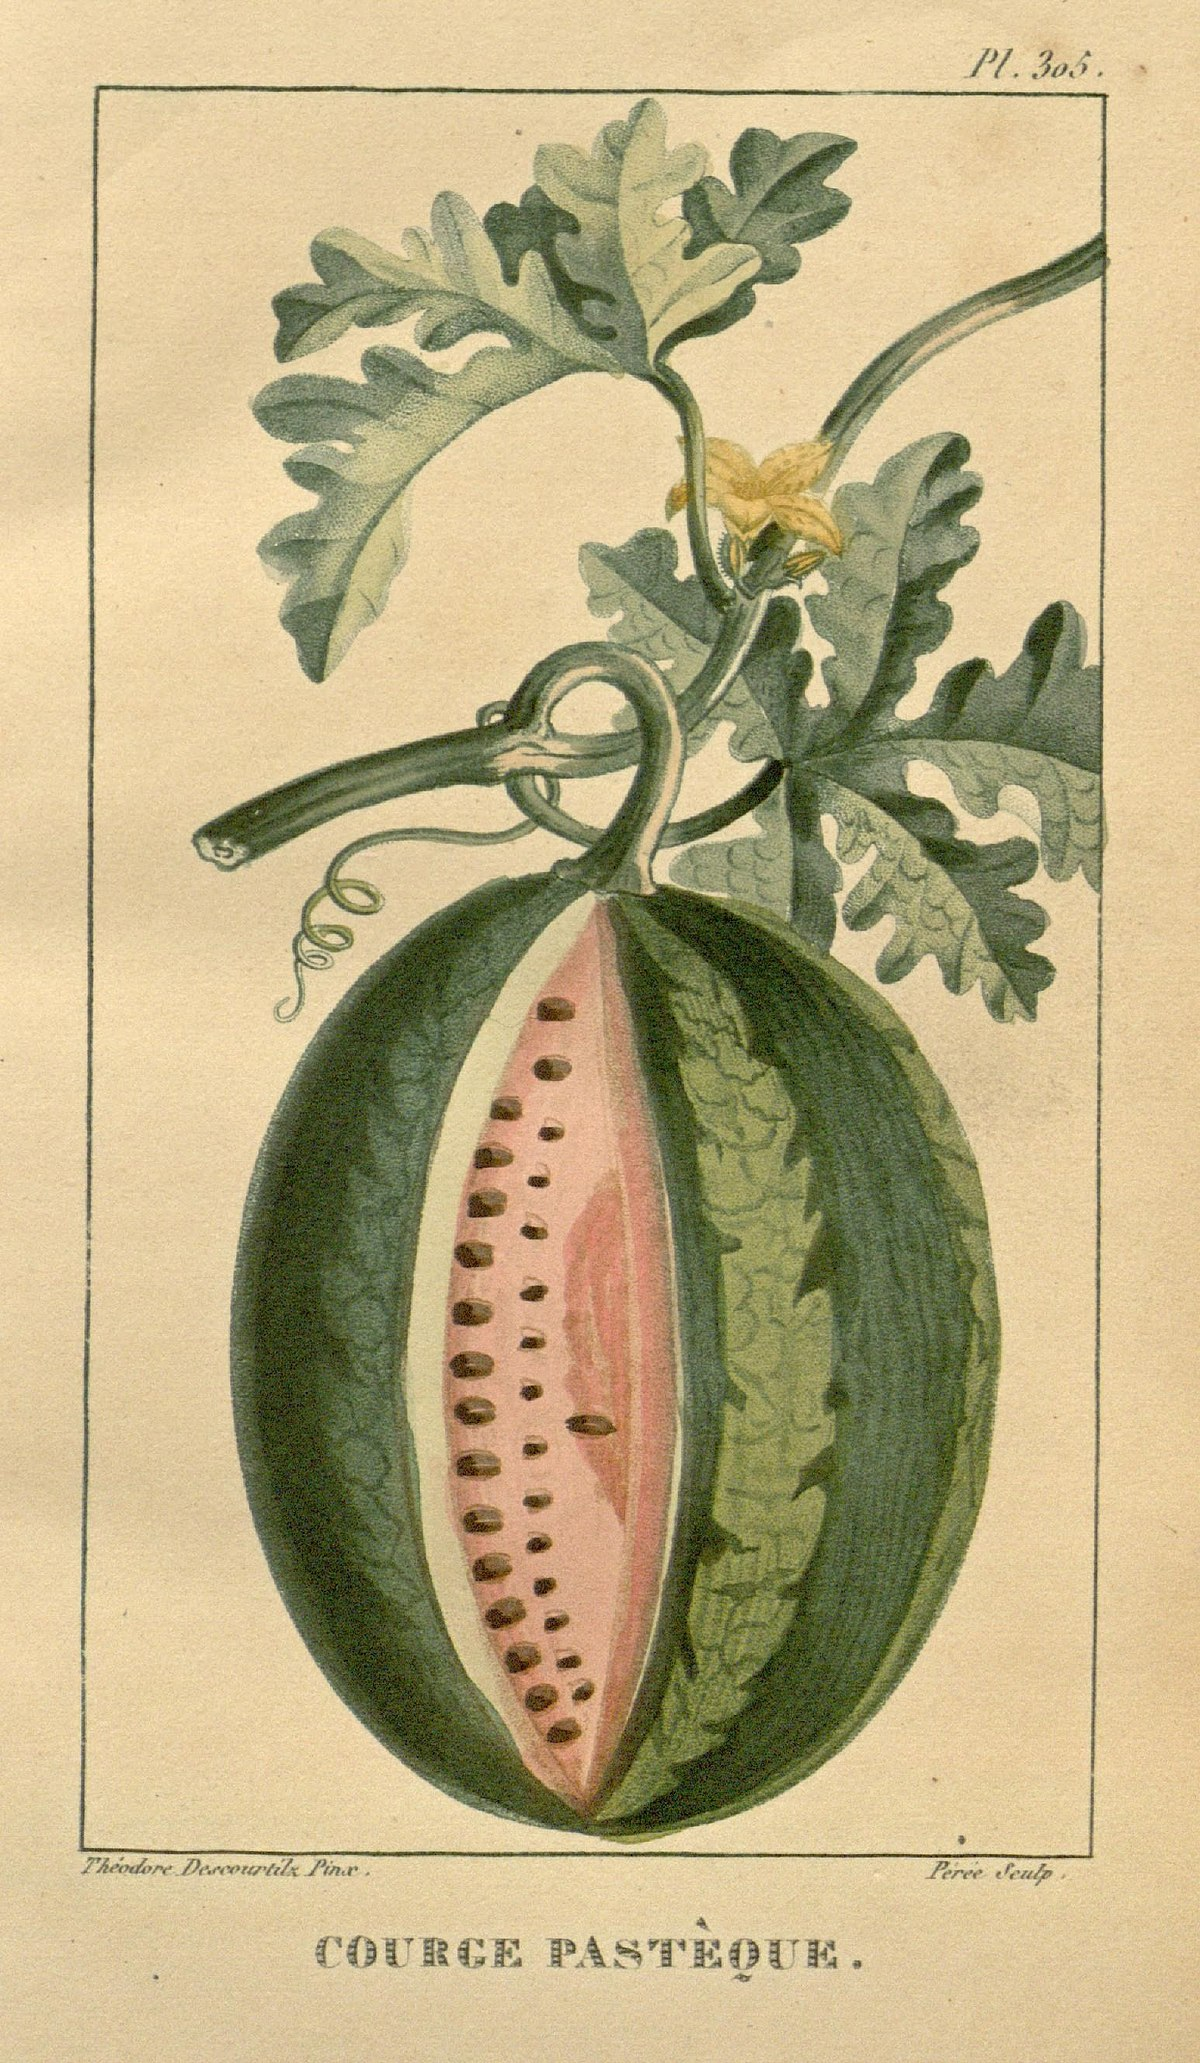 A few hundred years ago watermelons tasted very different.